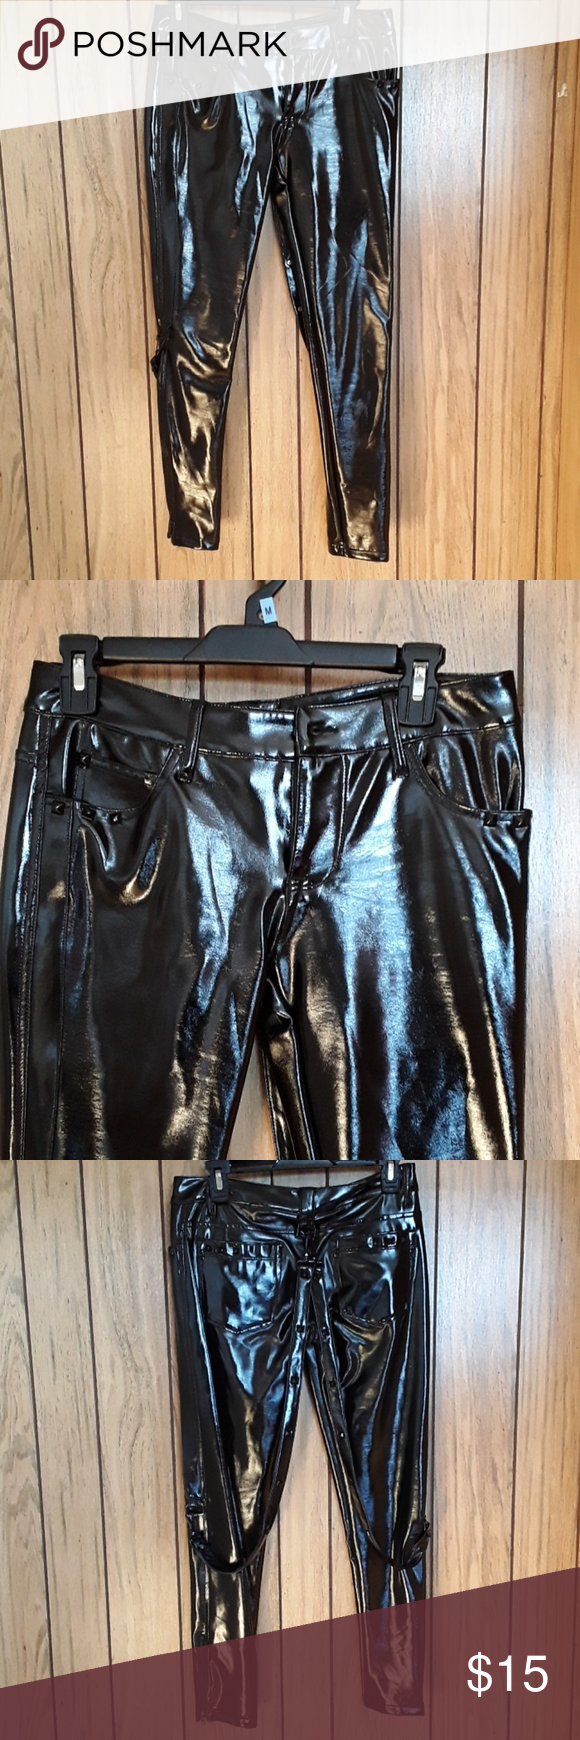 4e786ea43f2 Lip Service Black Vinyl Pants Only wore once a few years ago. Shiny Black  Pants with Suspenders and Black Pyramid Studs aligning pockets Lip Service  Pants ...